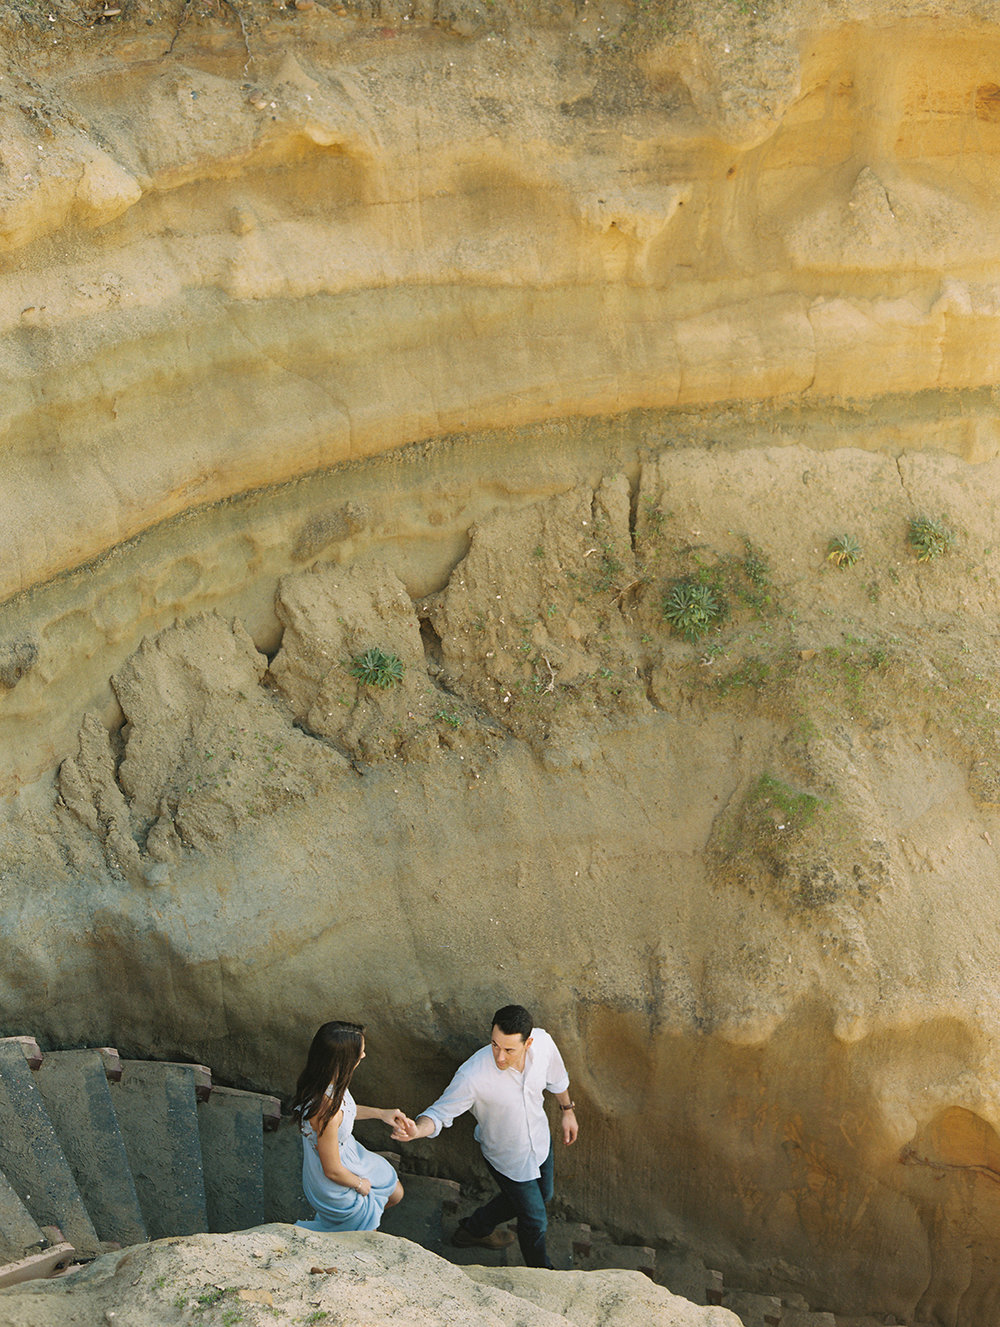 108-brumley-wells-photography-brett-sarah-engagement-torrey-pines.jpg